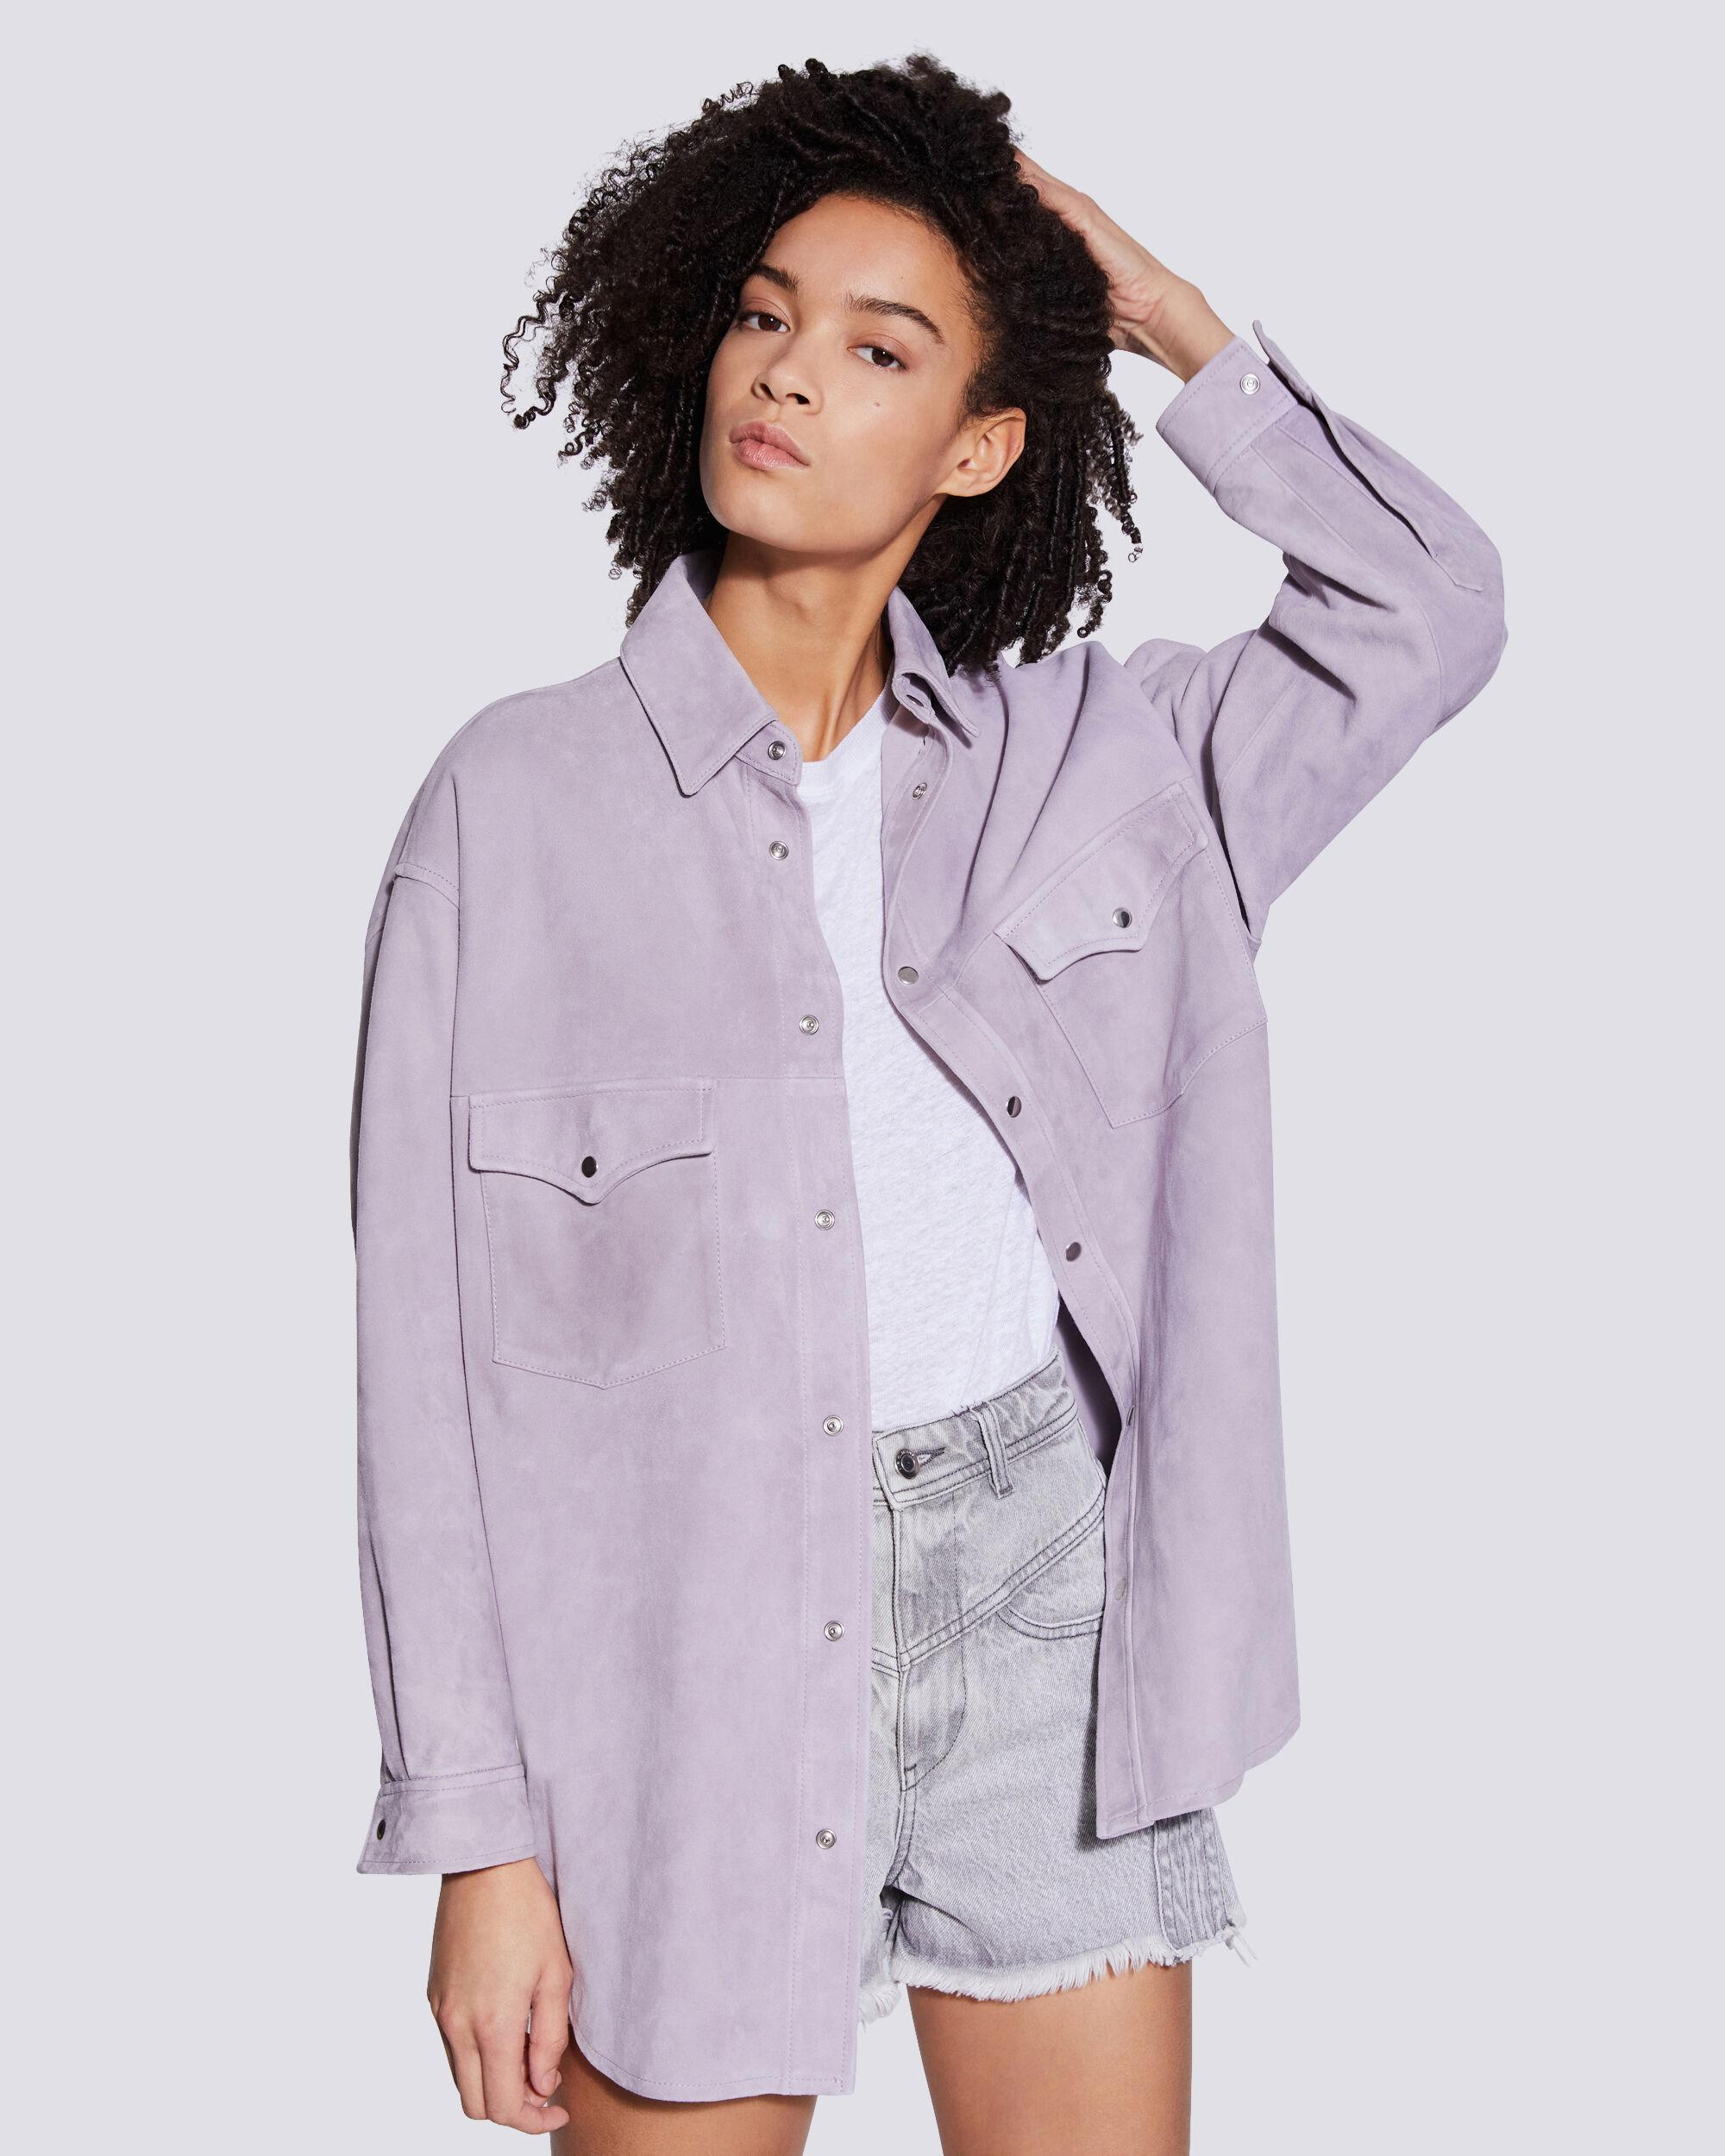 WOLFRA SUEDE BUTTON UP SHIRT